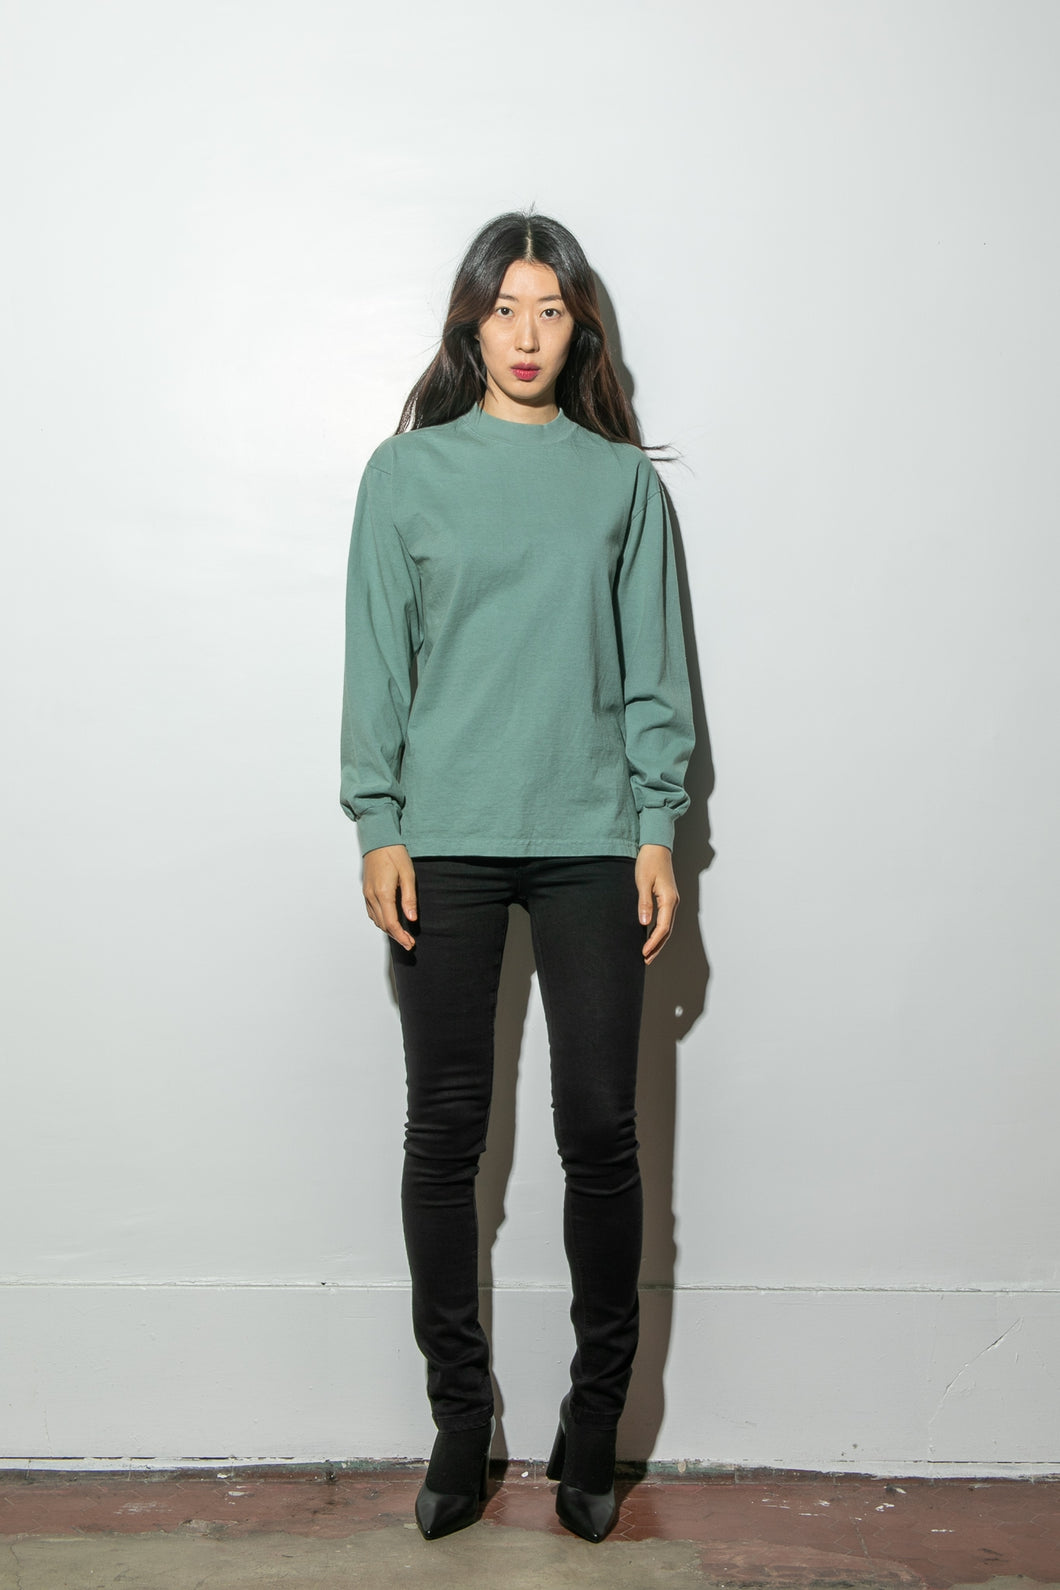 Oak Long Sleeve Mock Neck Tee in Atlantic Green